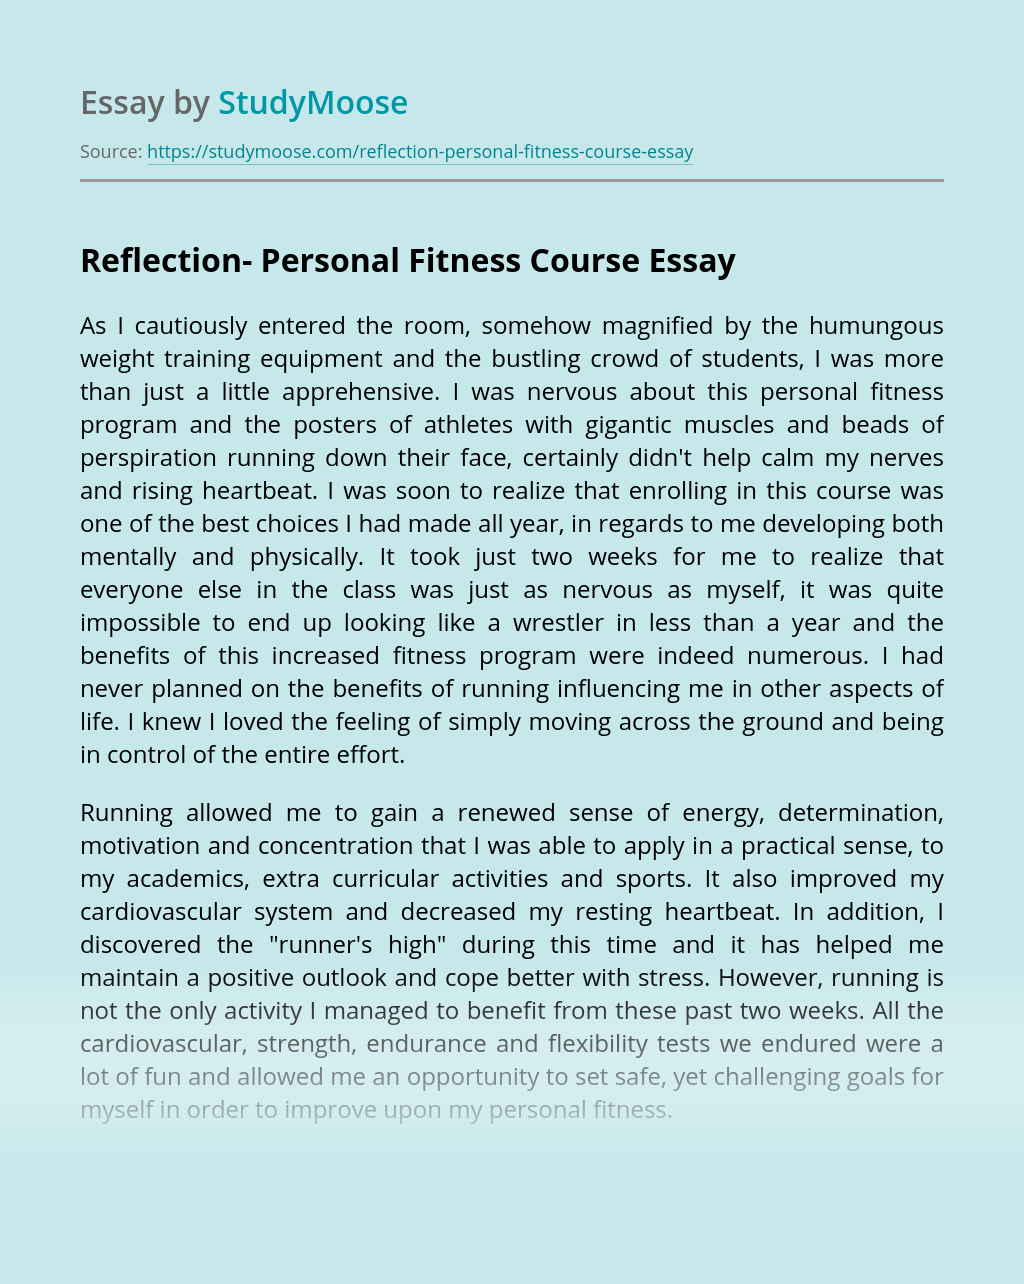 Reflection- Personal Fitness Course